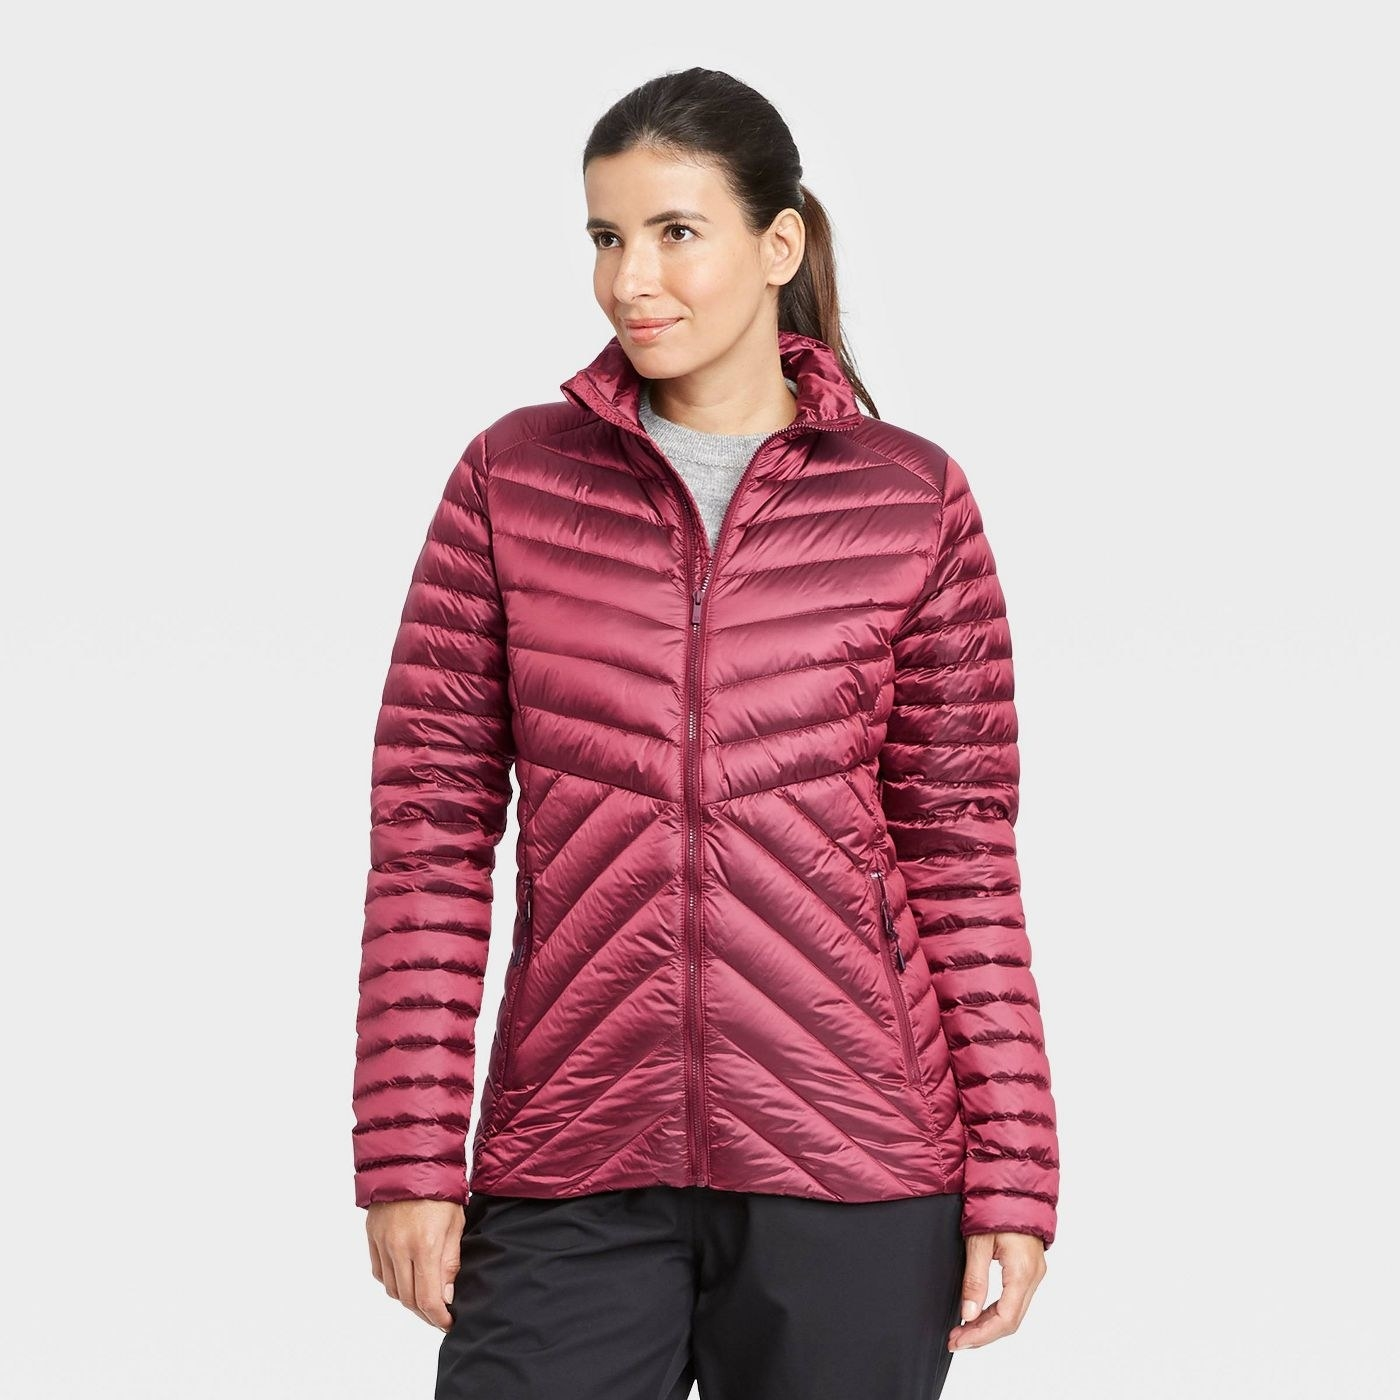 Model in packable down puffer jacket